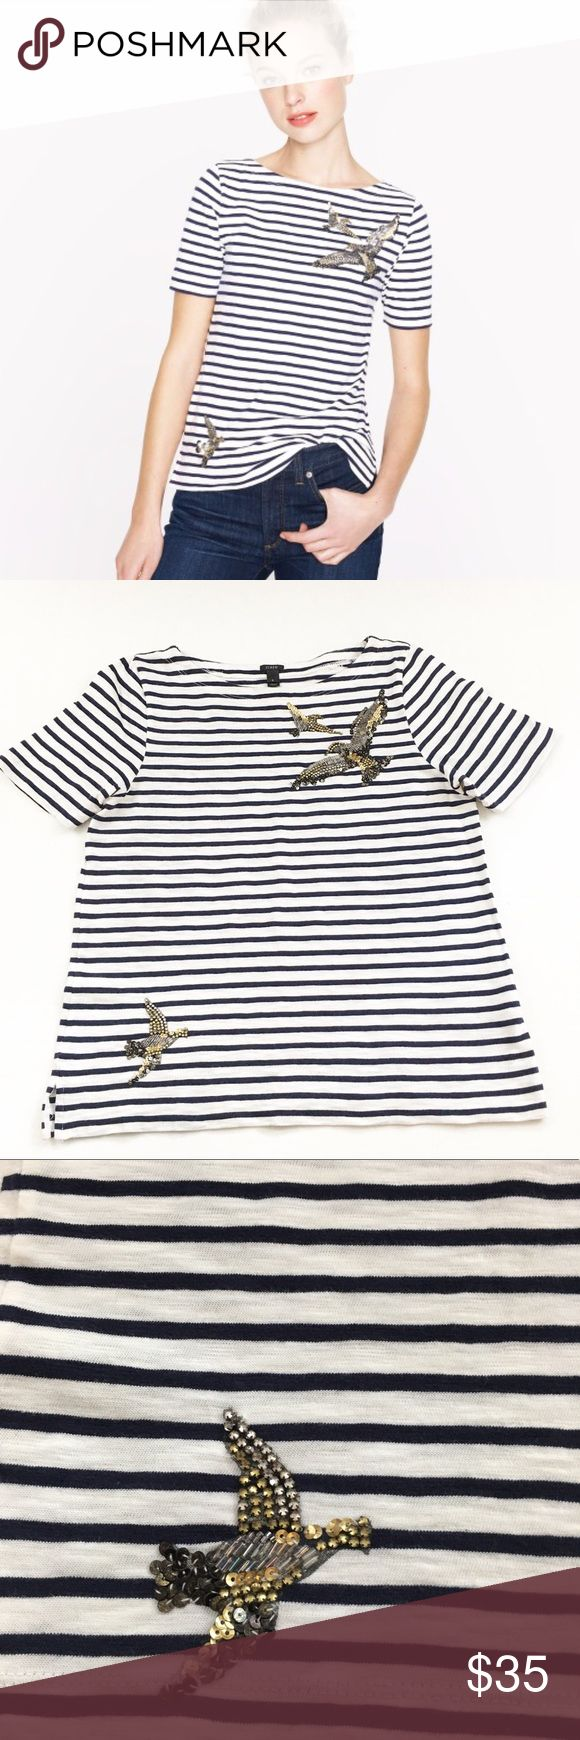 """J. Crew Sequins Bird Top Size M Navy and white striped short sleeve top with sequin bird appliqués at hem and neckline. VGUC showing only light wash wear. 100% Cotton. Armpit to Armpit-18 1/2""""▪️Shoulder to Hem-23 1/2"""". J. Crew Tops Tees - Short Sleeve"""